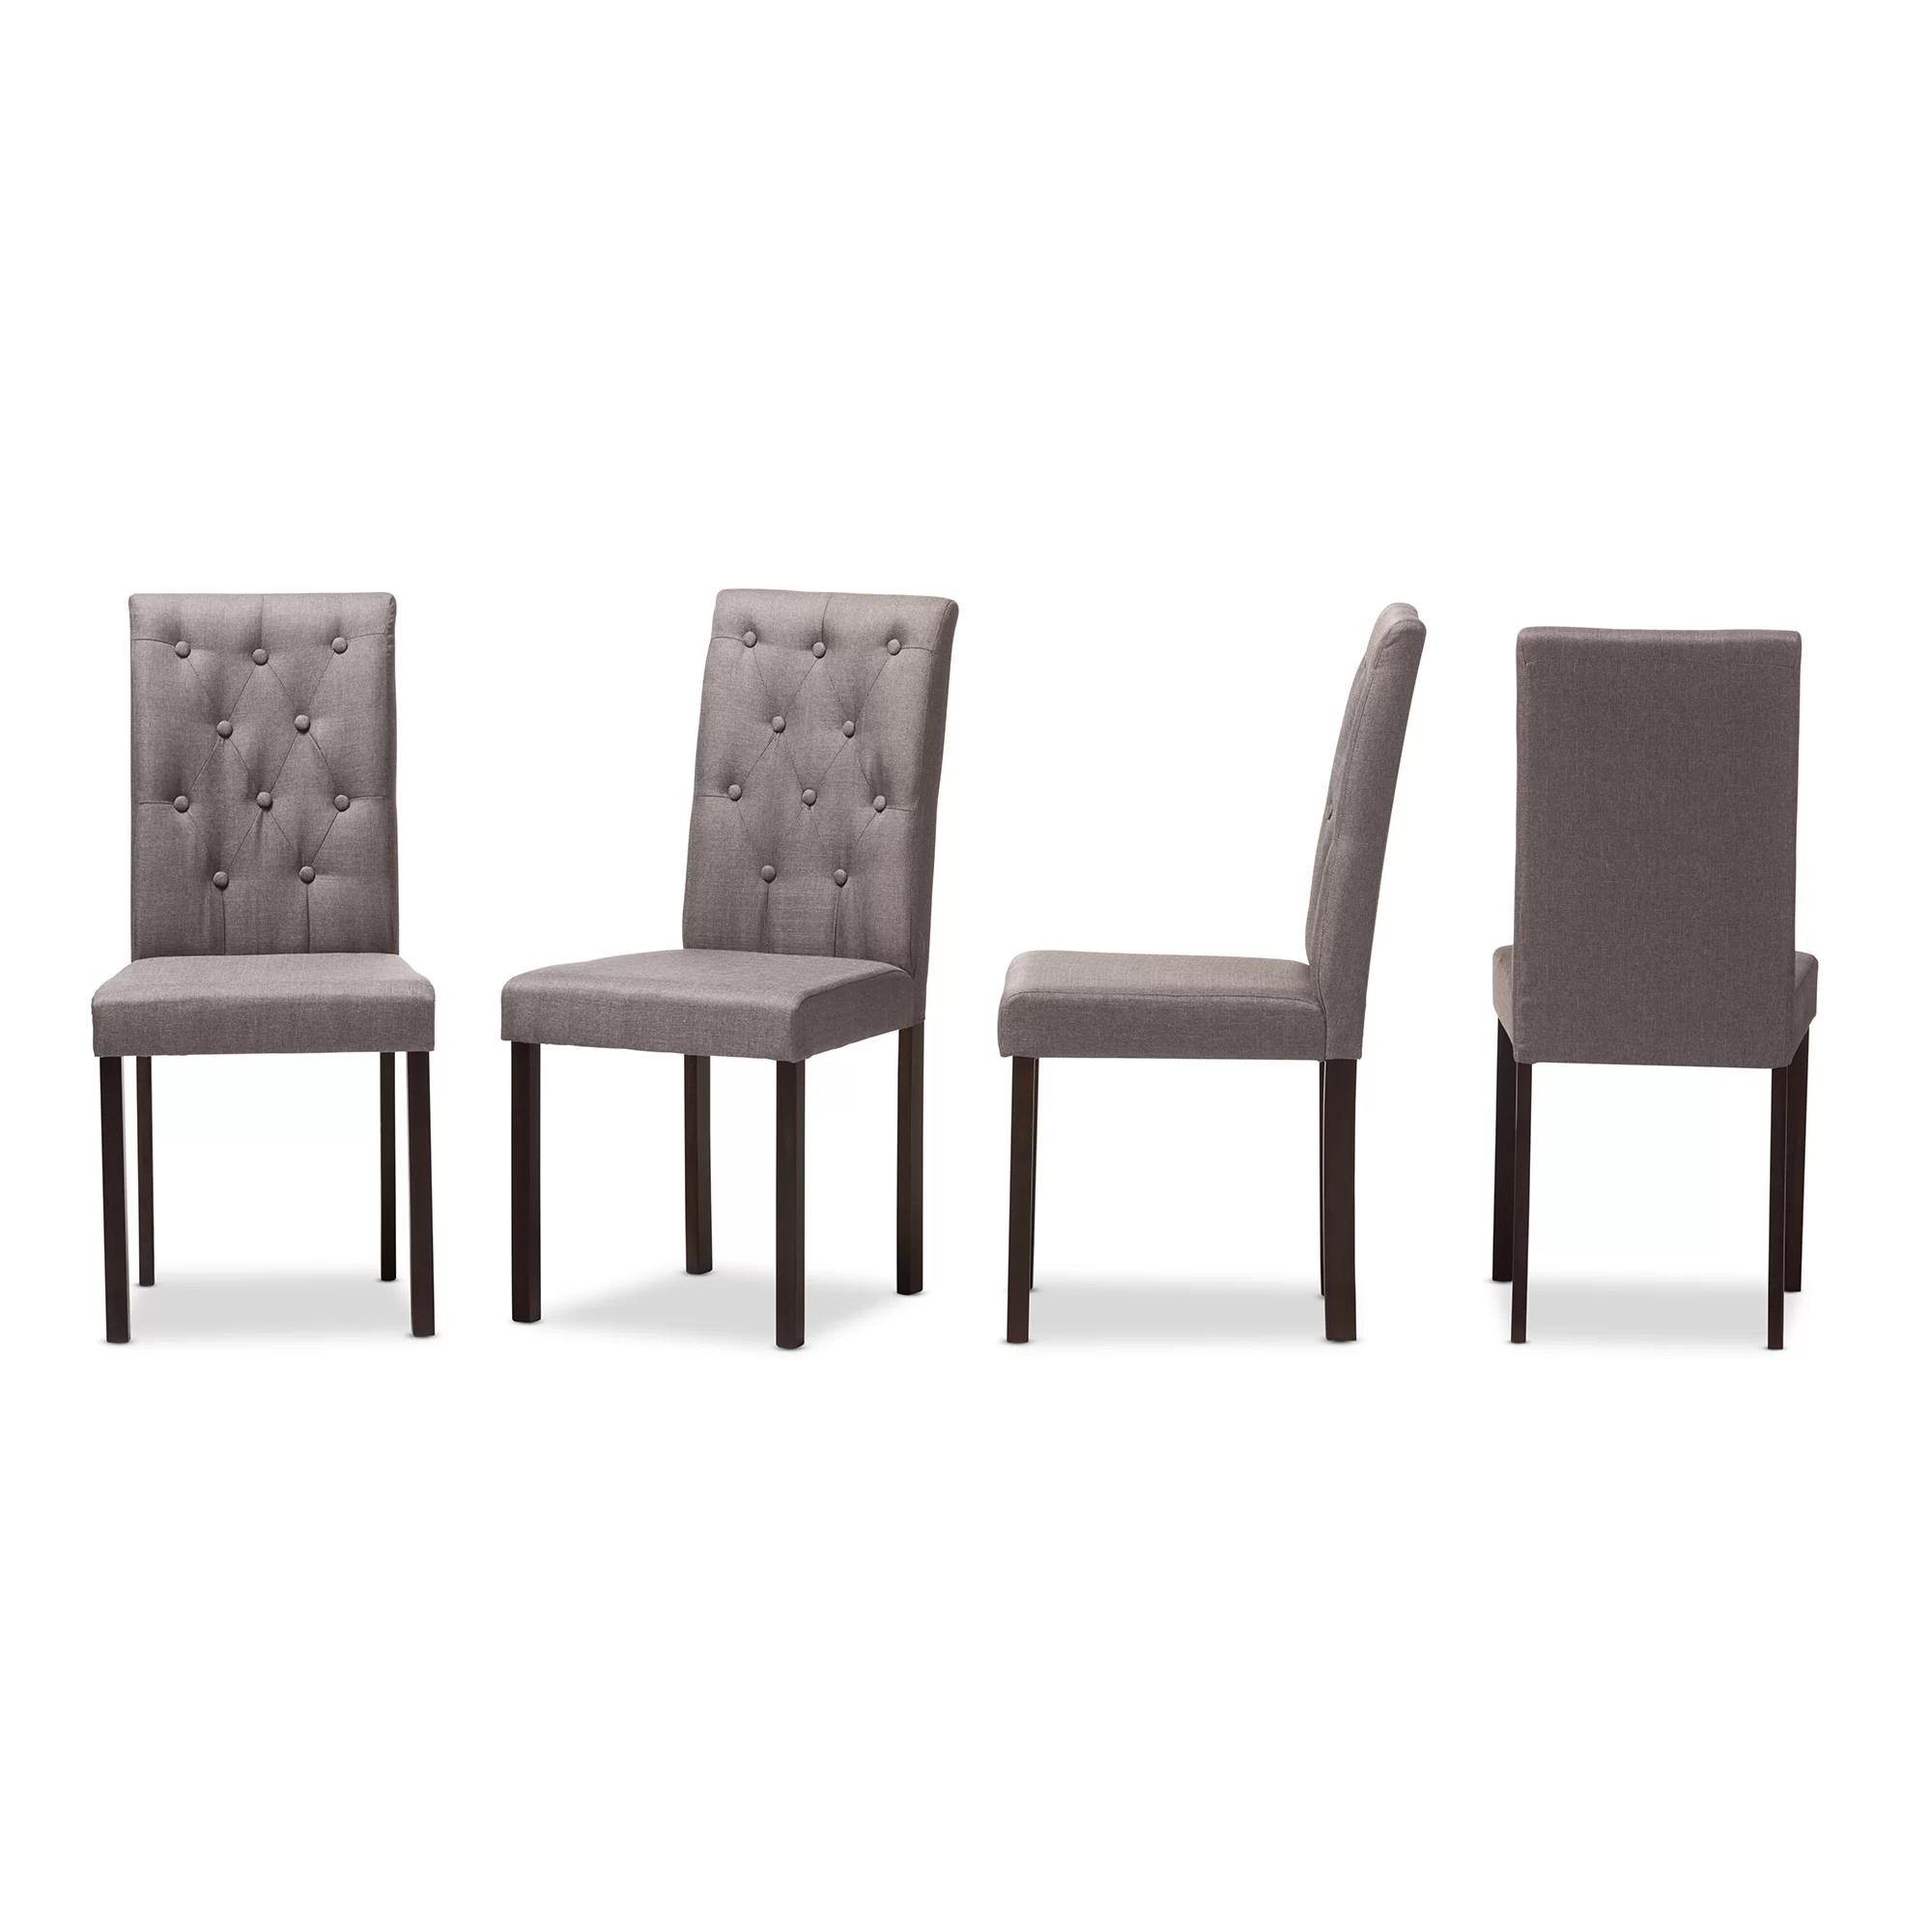 Studio Chairs Wholesale Interiors Baxton Studio Andrew Side Chair